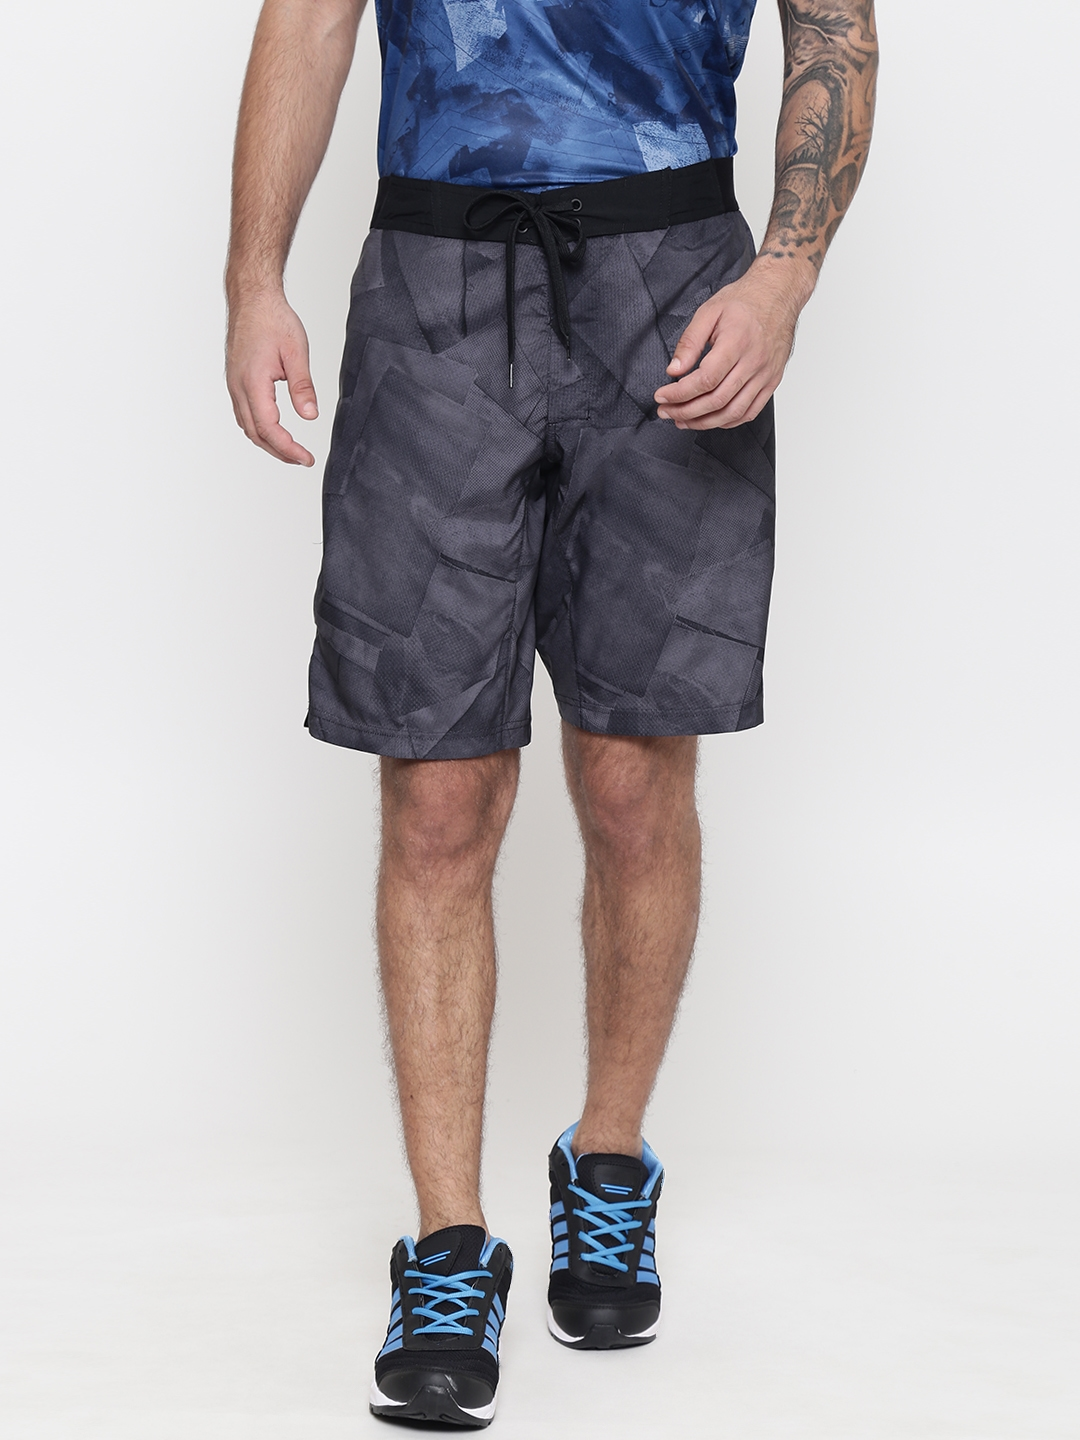 Reebok Men Grey Printed WOR GRAPHIC BOARD Training Sports Shorts